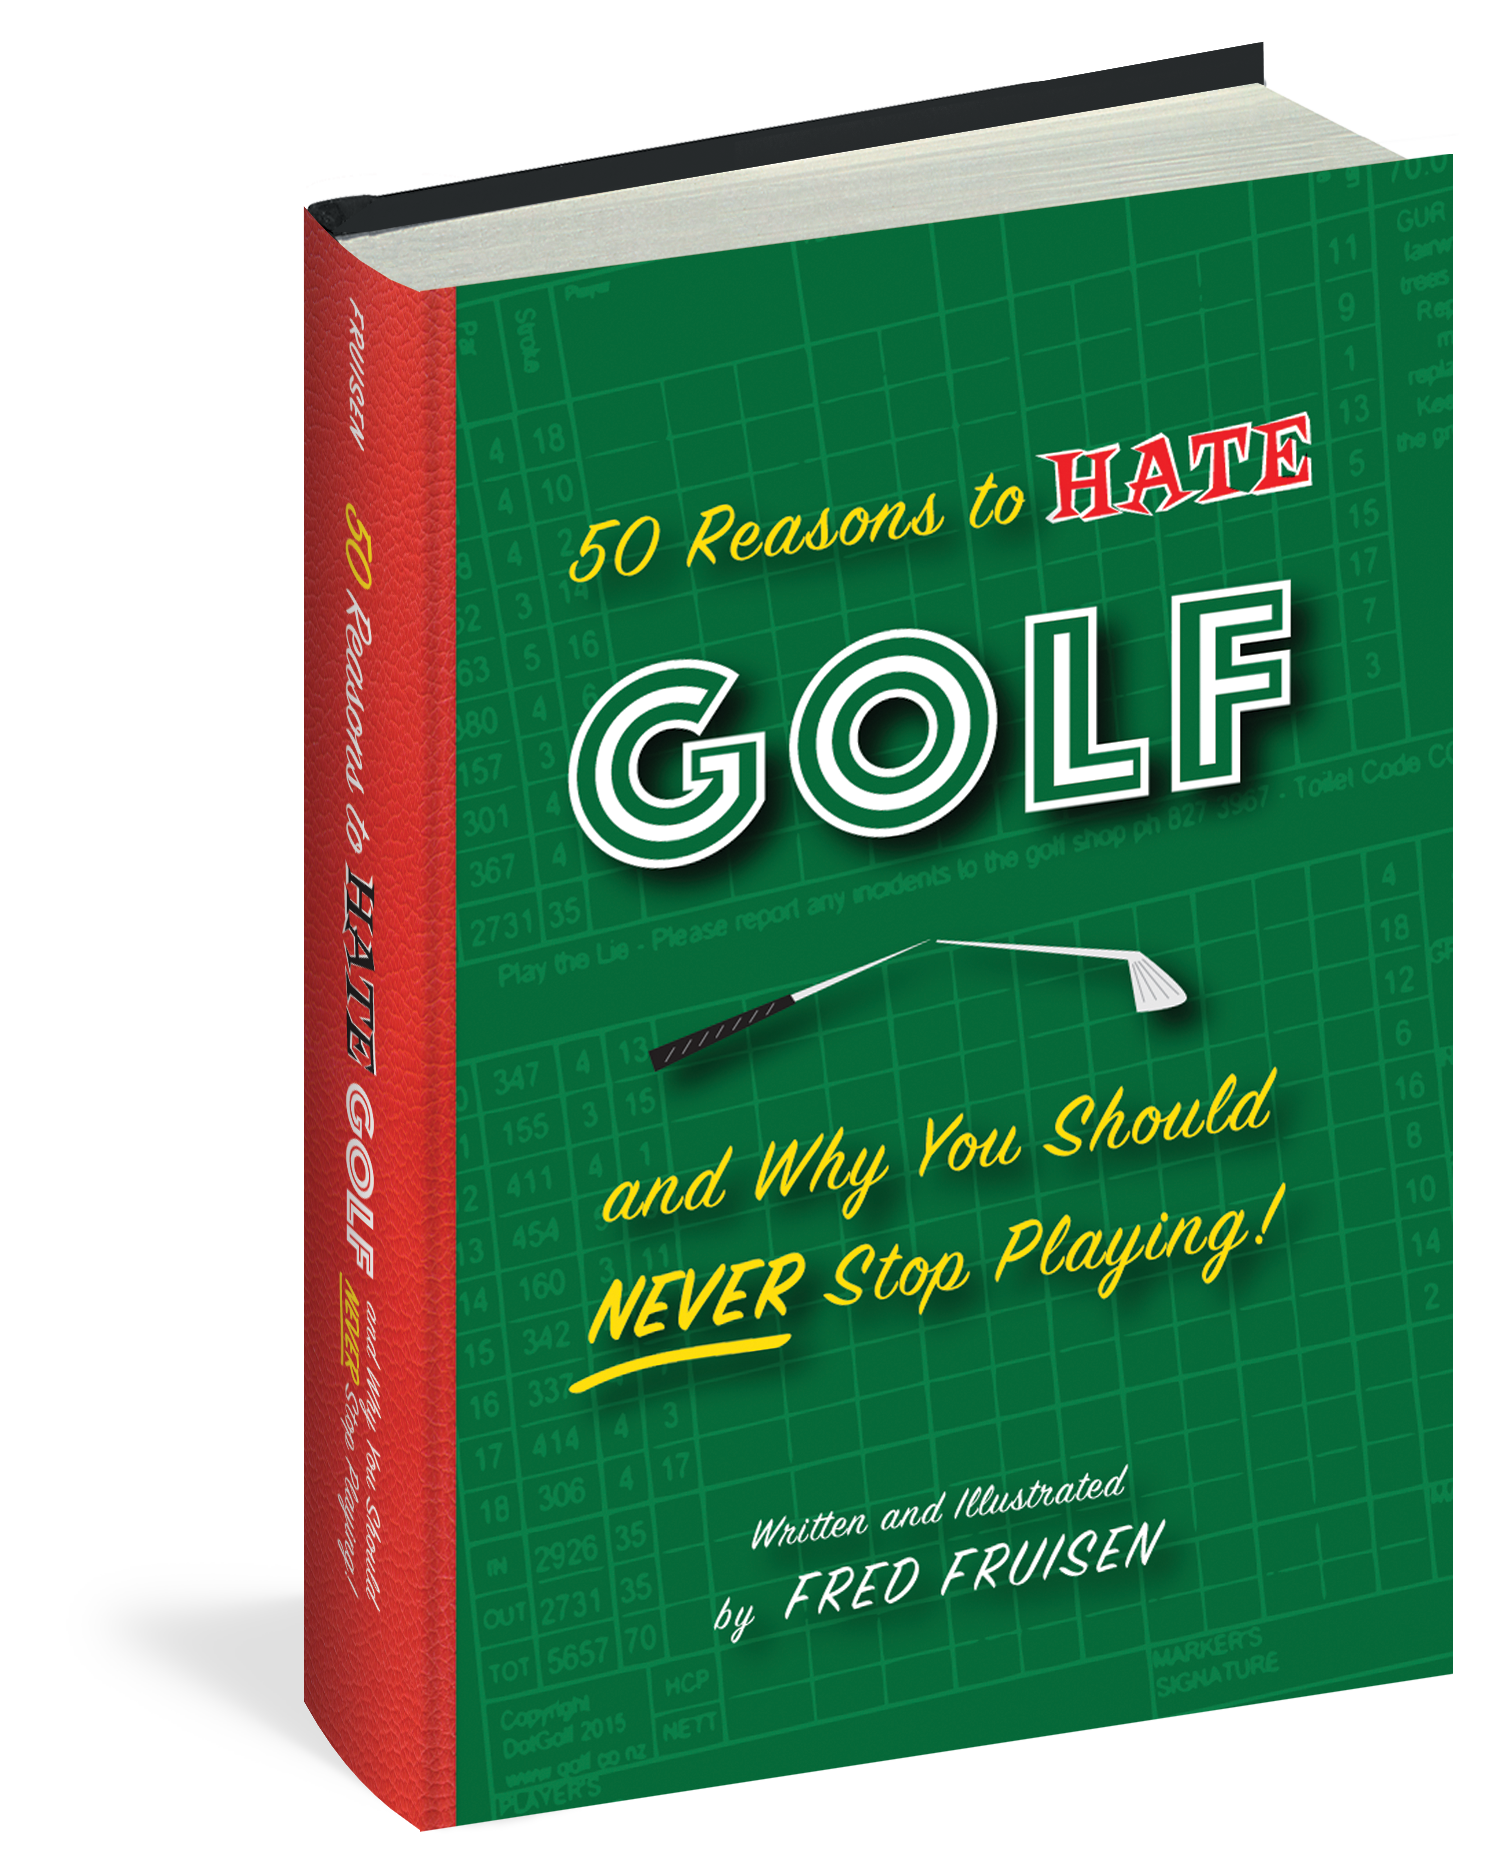 50 Reasons to Hate Golf